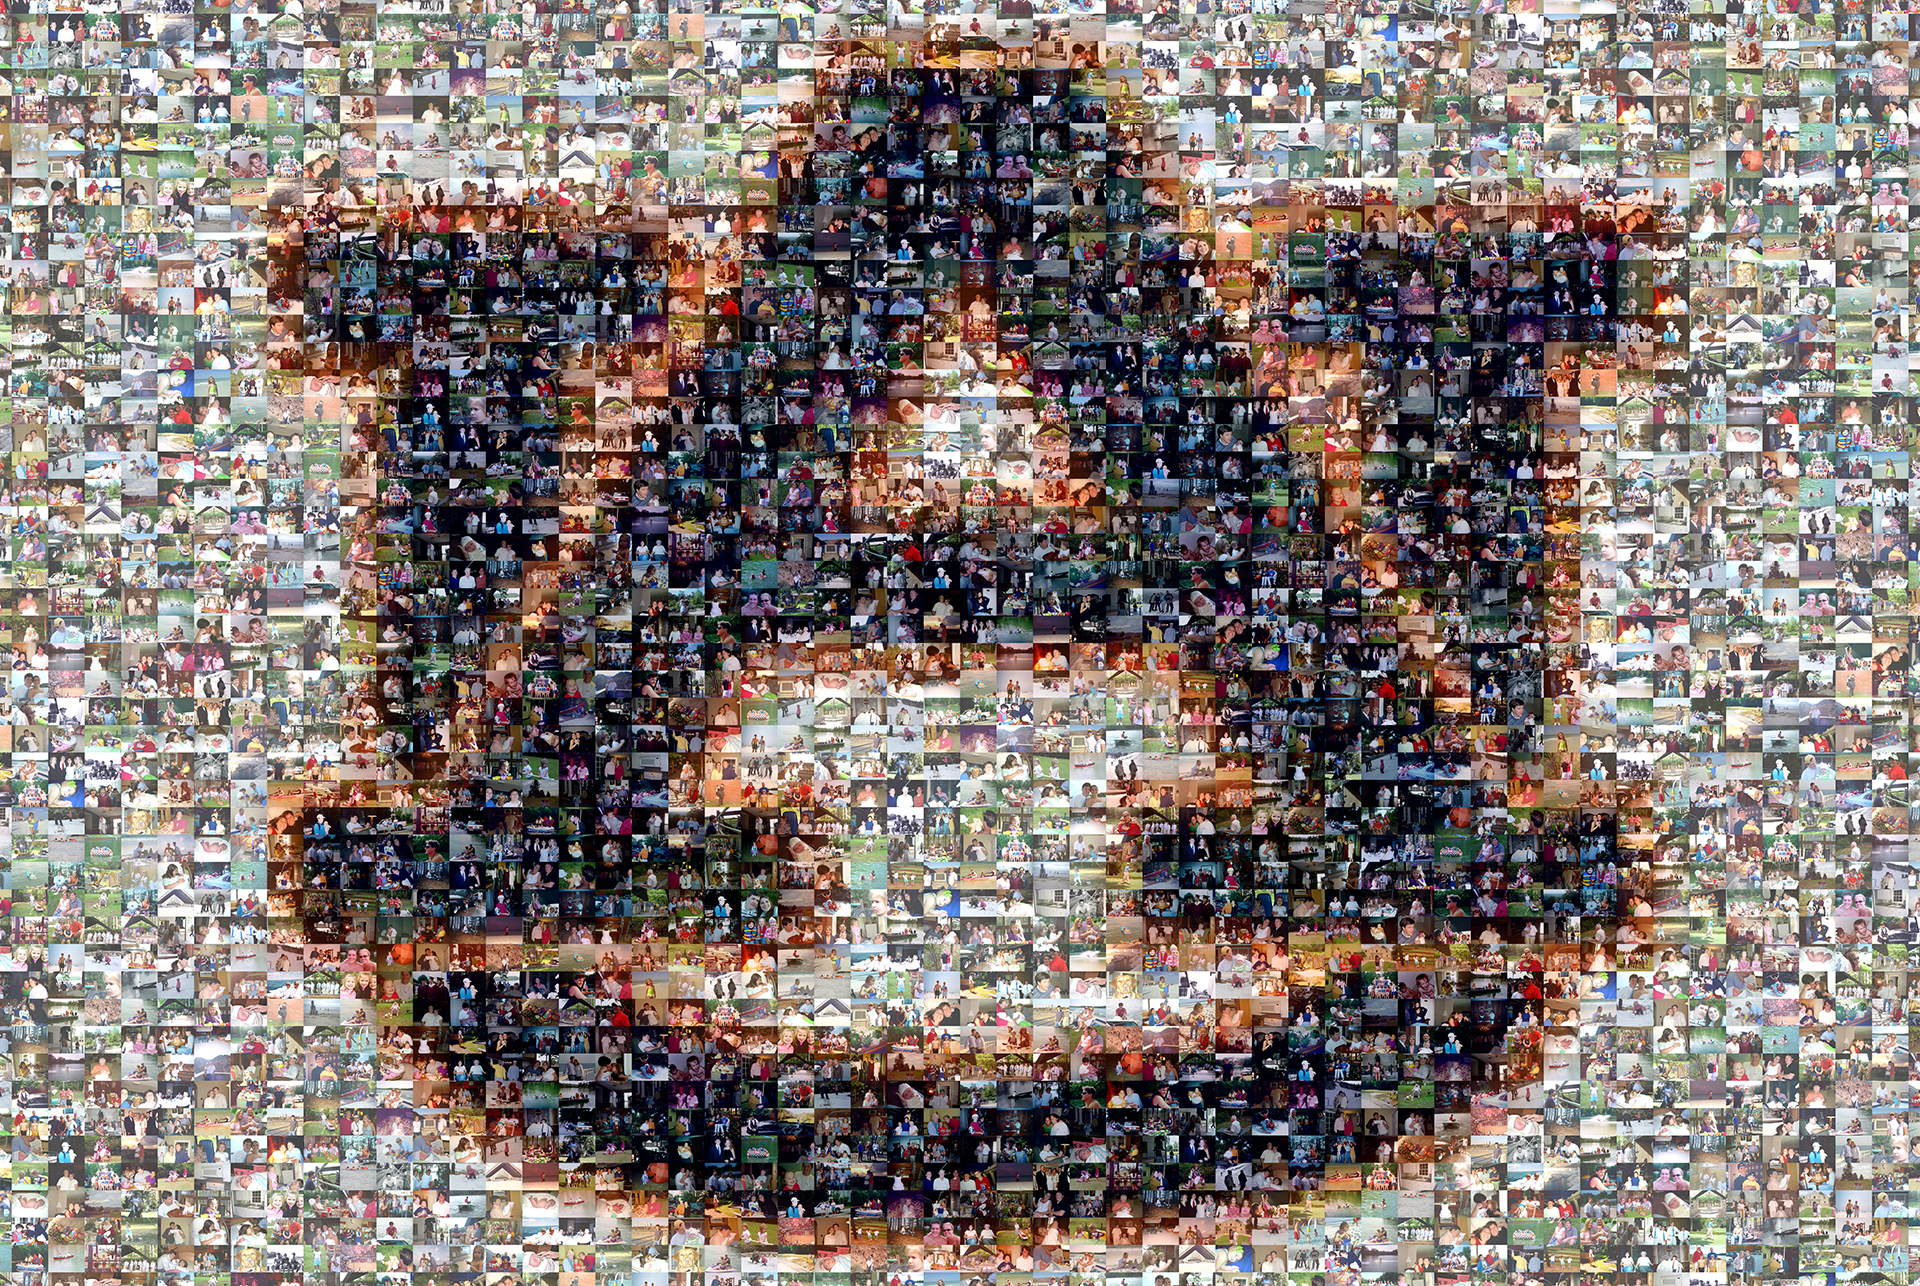 photo mosaic created using 280 family photos